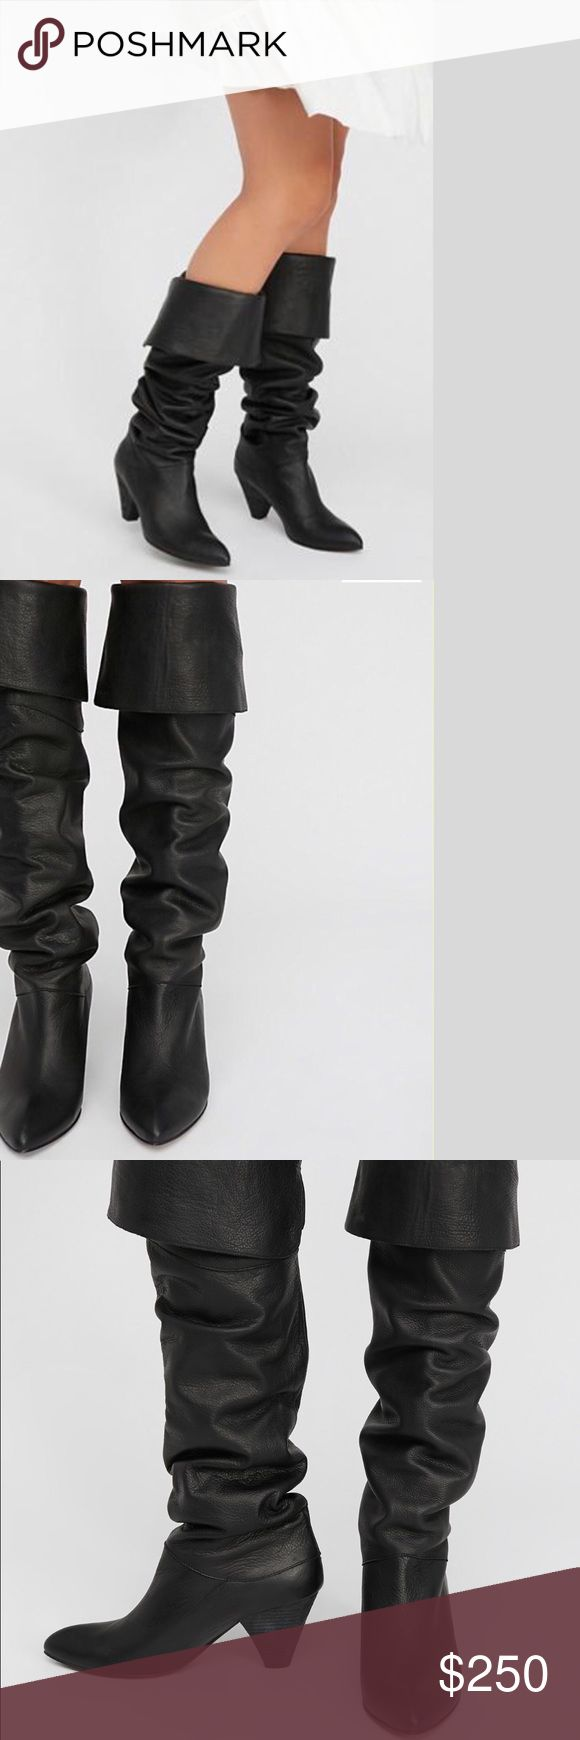 "Brand New Over-the-knee Boots NWB Free People luxe leather over-the-knee boots featured in a versatile style. Wear folded, slouchy, or all the way up. Top Rated. NWB - pull-on style - stacked heel - pointed toe - made in Spain - Heel 3.5"" shaft 26"" Free People Shoes Over the Knee Boots"